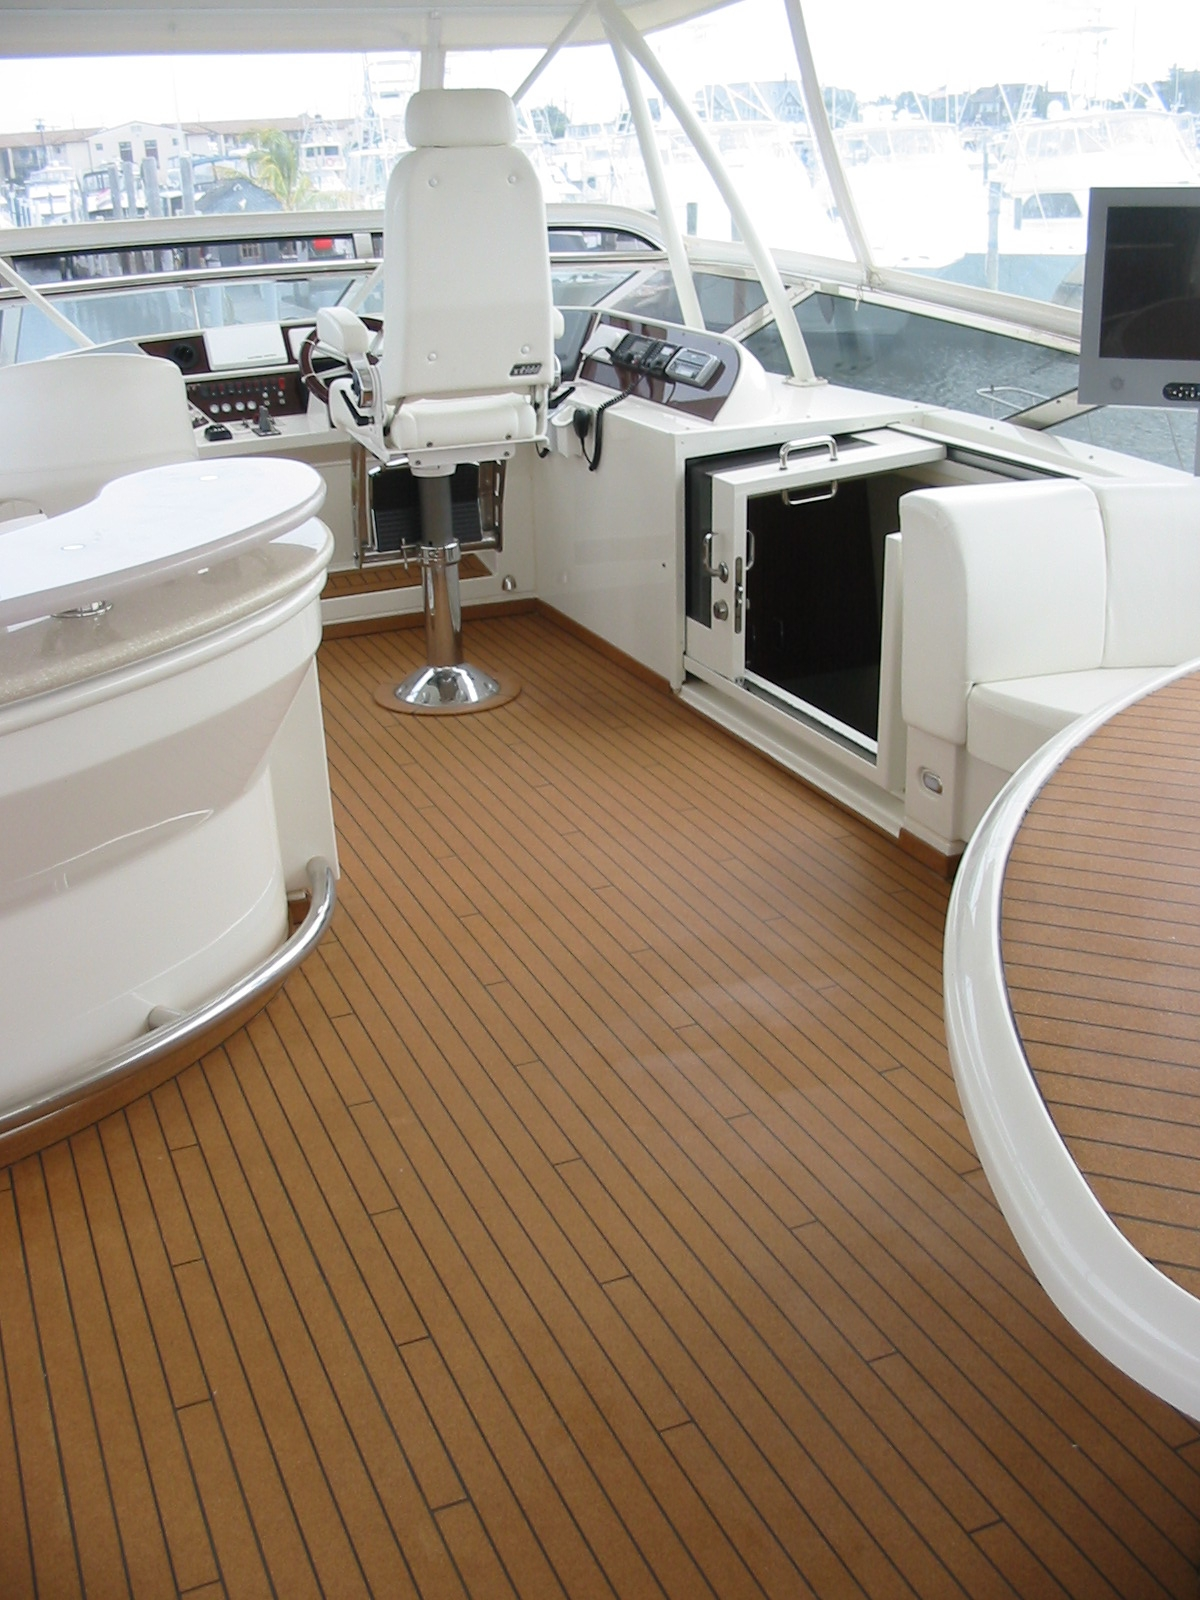 Imitation Wood Flooring For Boats